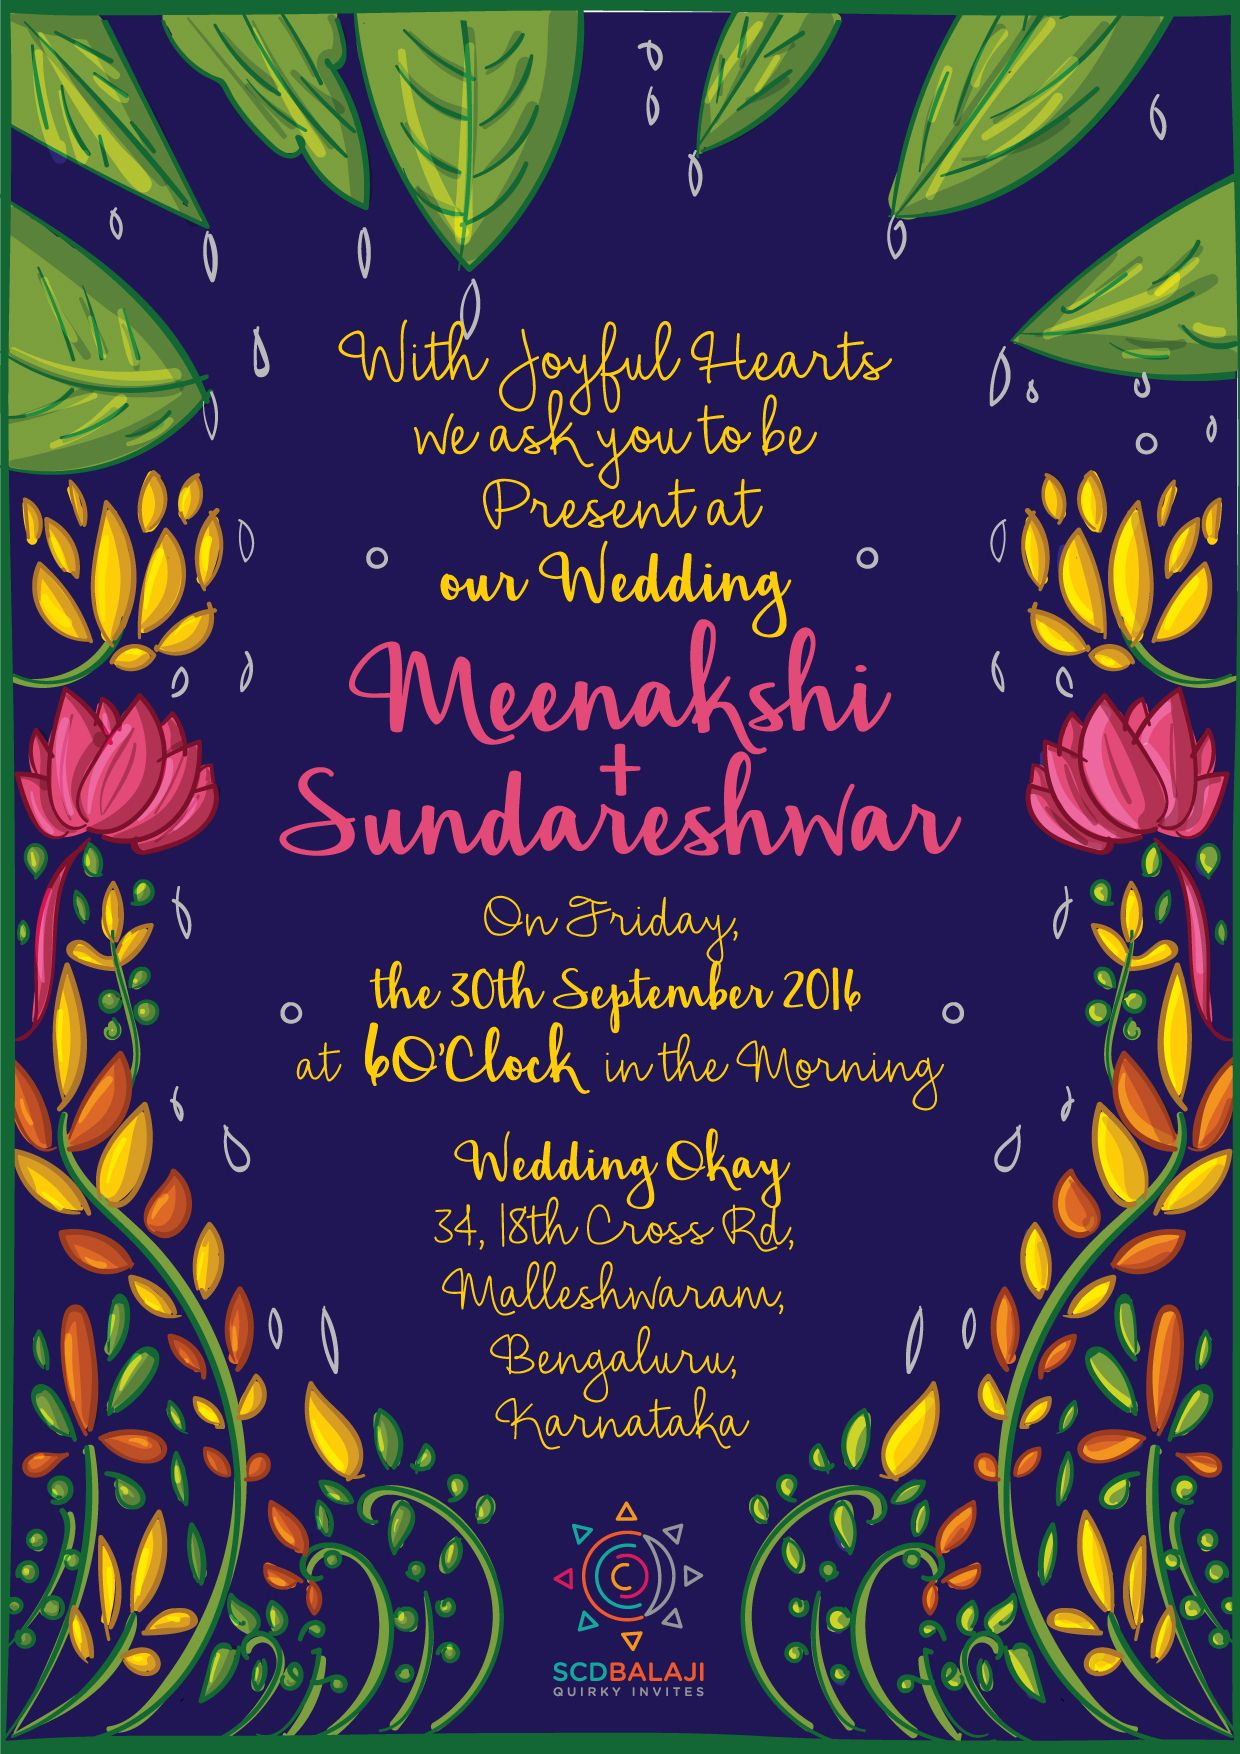 Print Ready Tamil Brahmin Wedding Invite Design By Scdbalaji Indian Ilrator South Ilration And Product Details